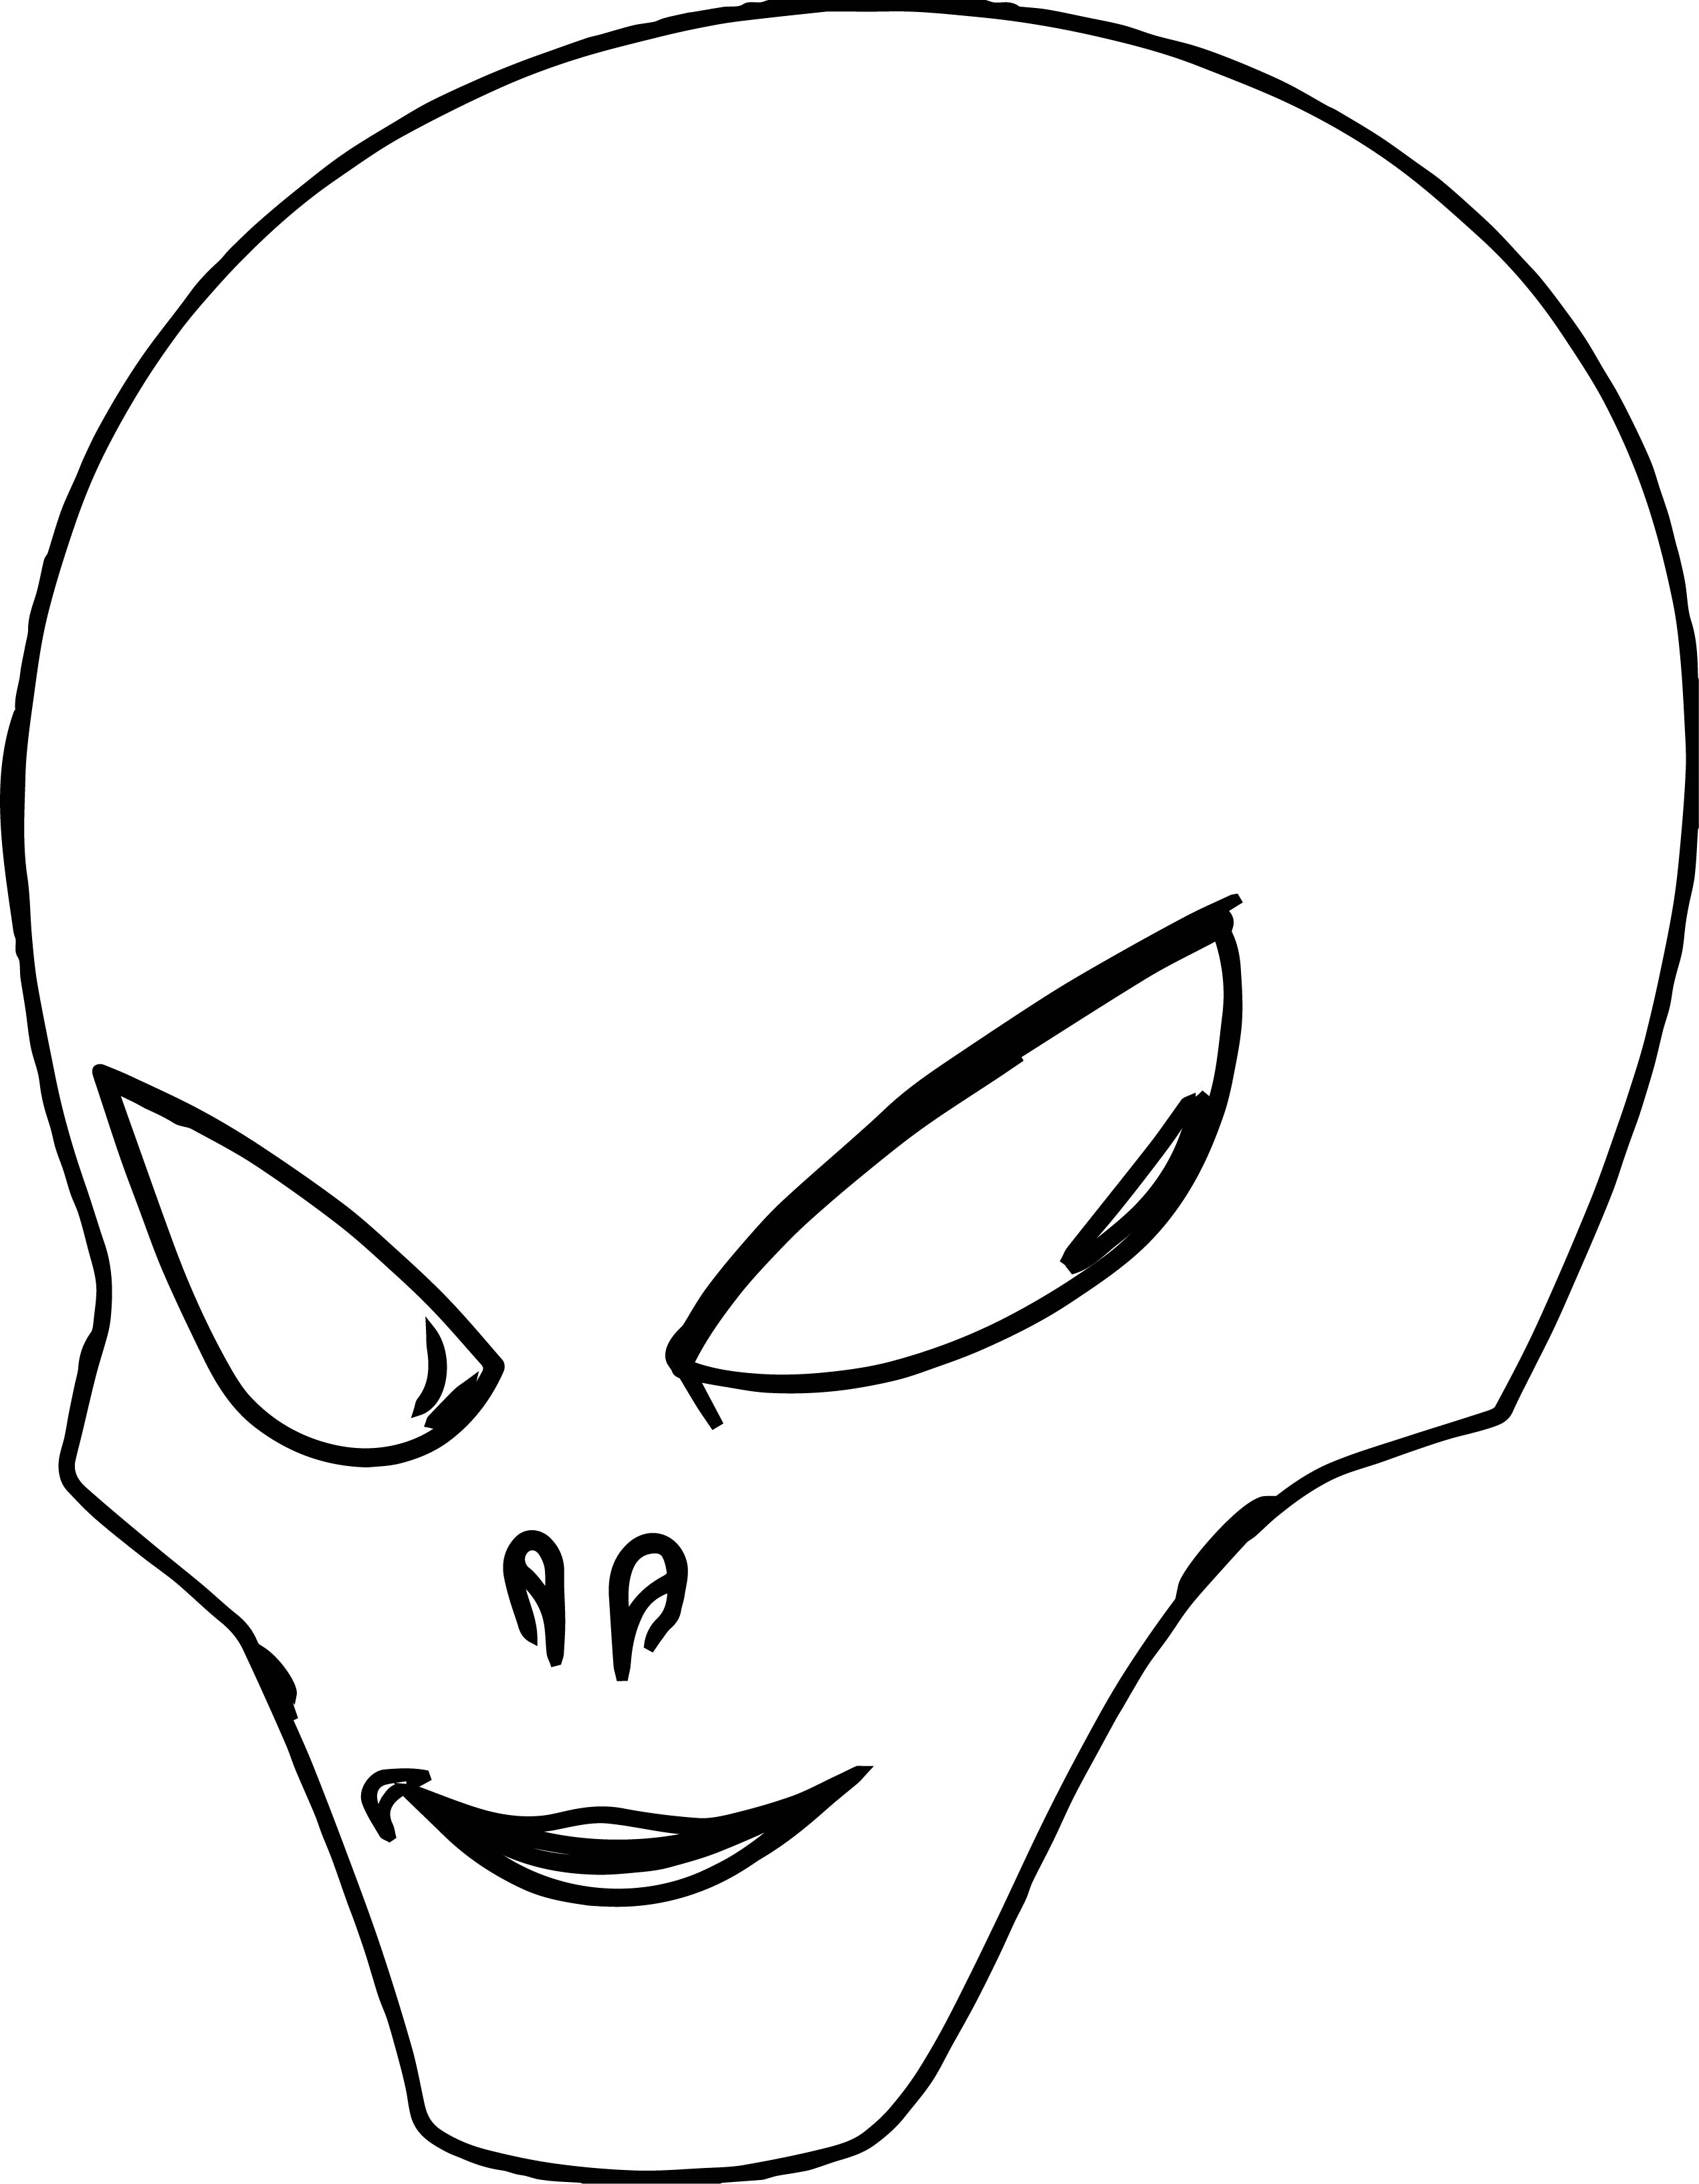 Alien Head Coloring Page